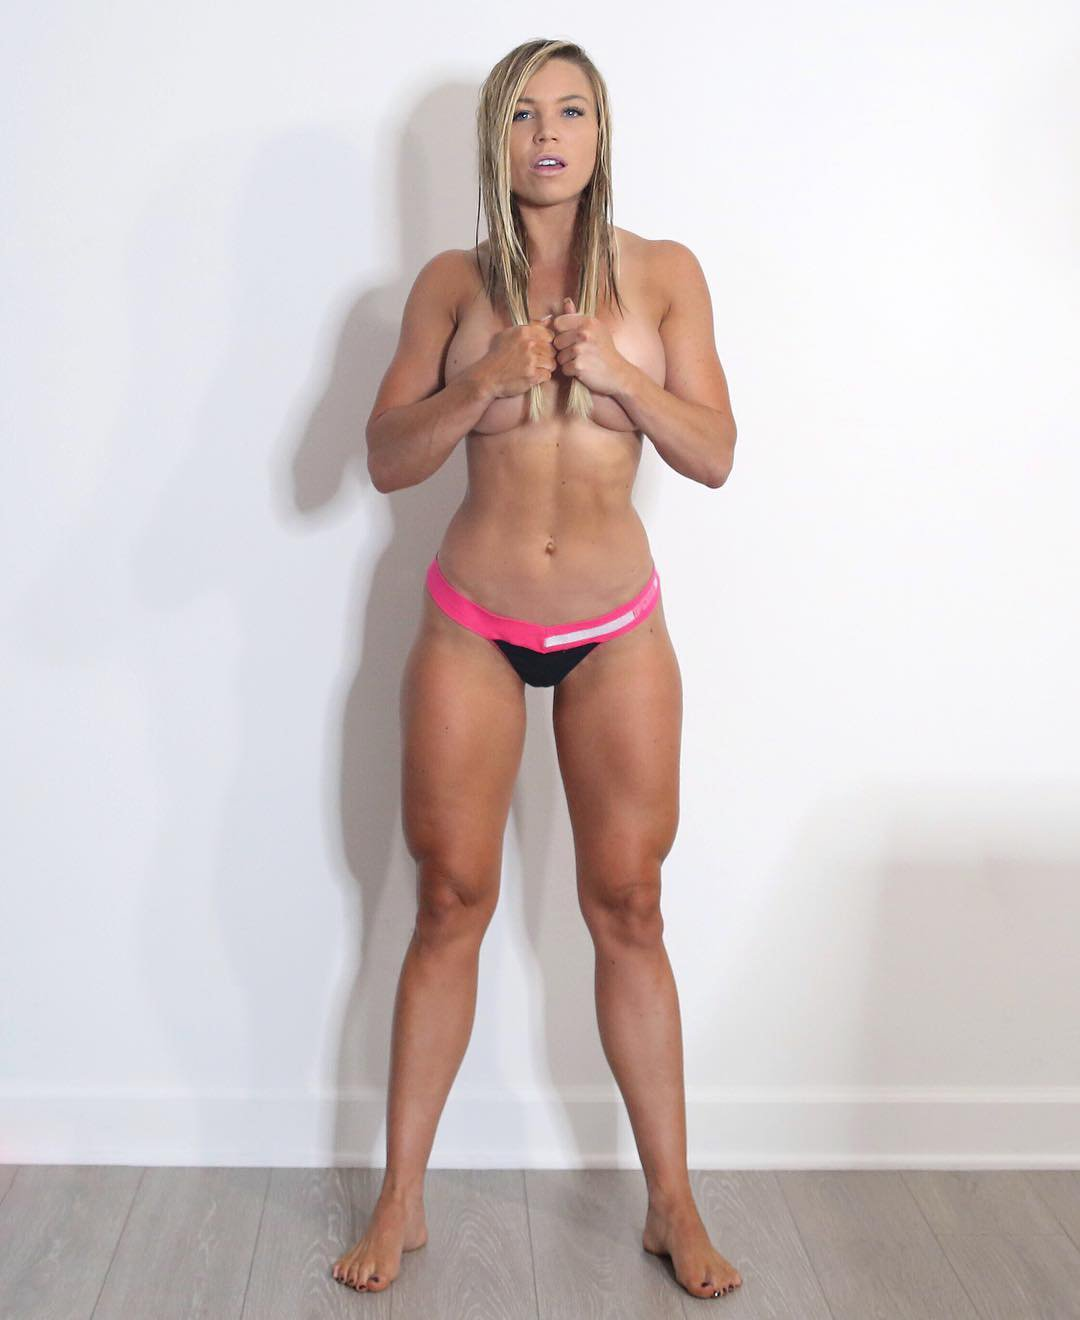 Fit girls nsfw